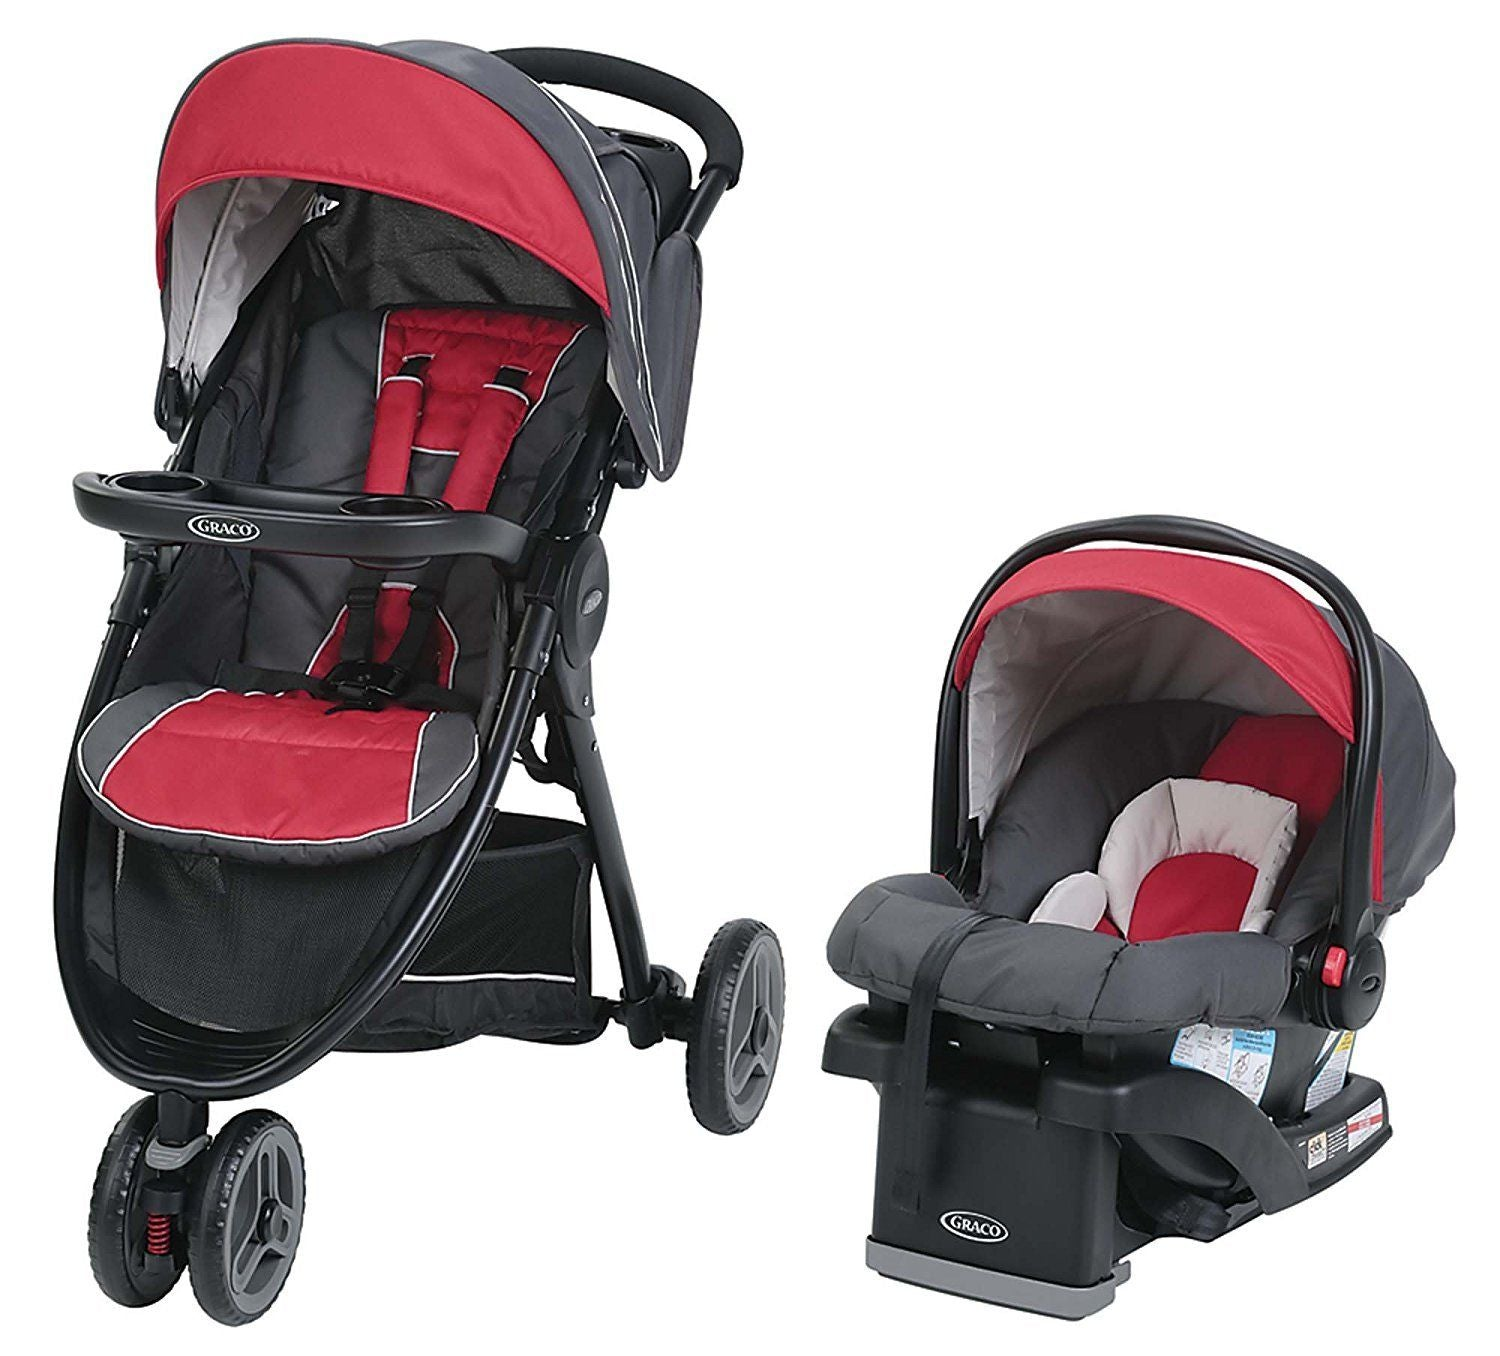 Graco FastAction Sport LX Travel System - Chili Red